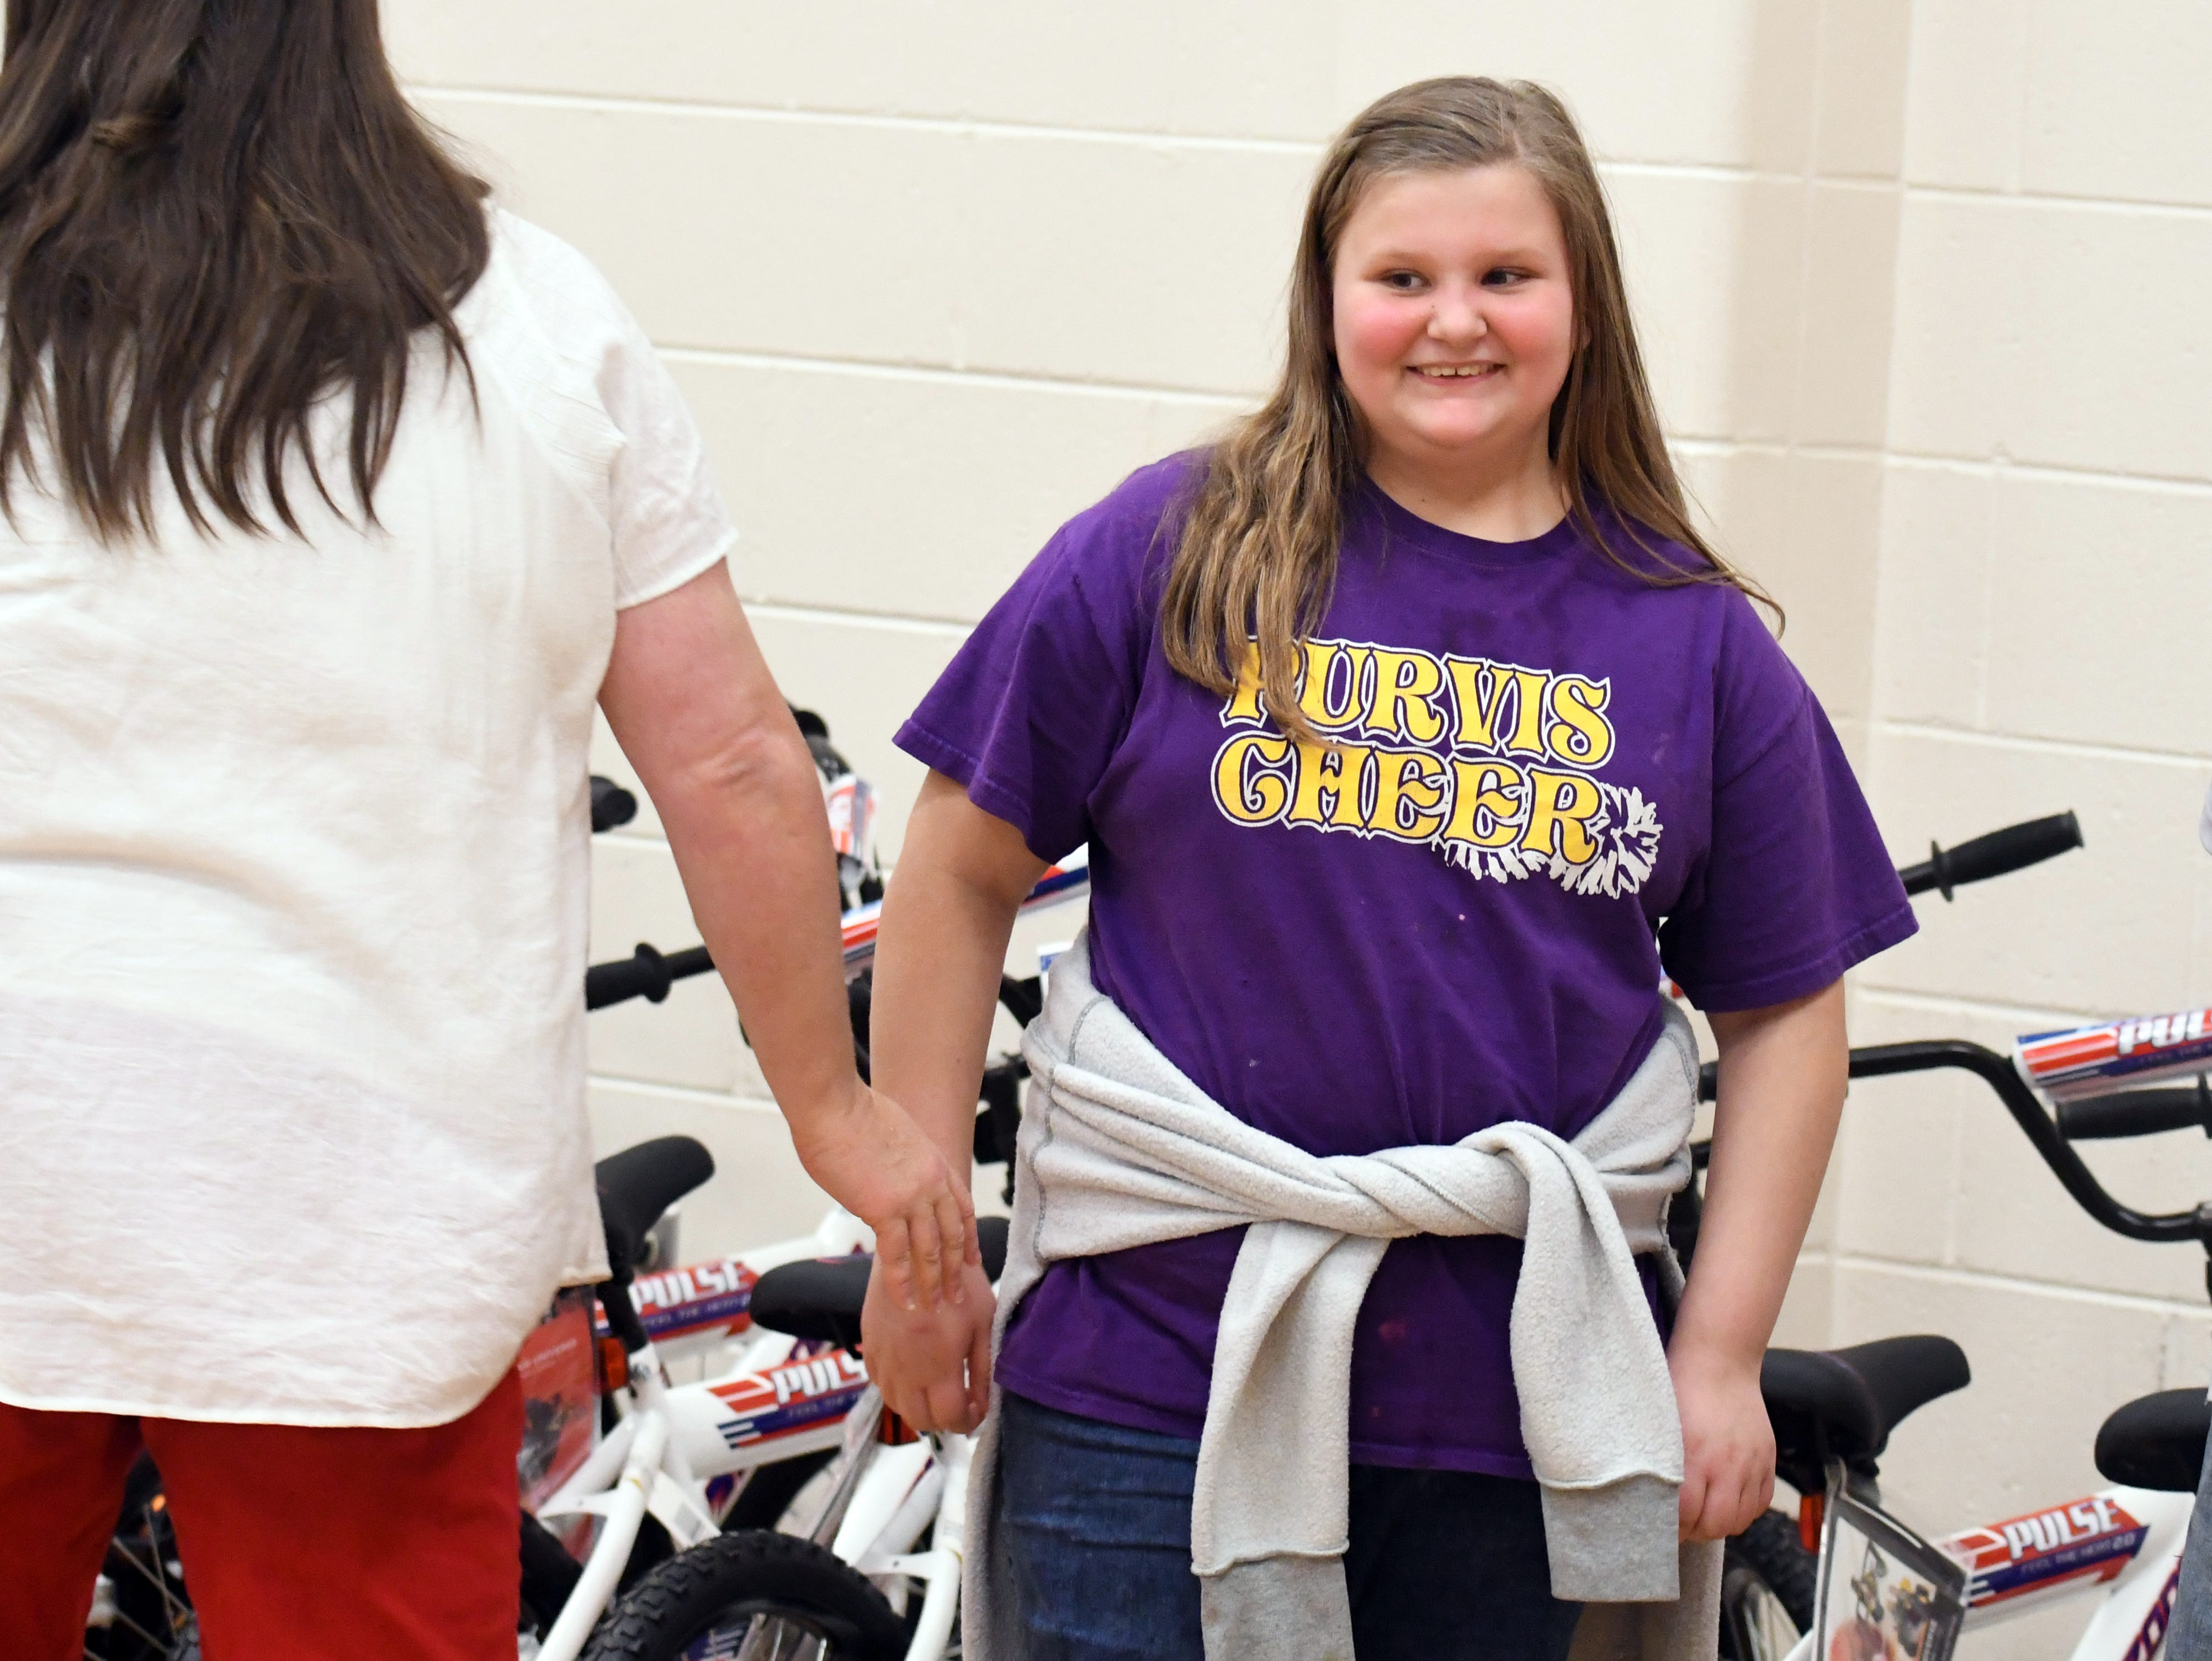 Fifth-grader Elaina James is surprised as she is selected to win a bicycle for her perfect attendance at Purvis Upper Elementary on Wednesday, December 5, 2018. Academy Sports and Outdoors donated 30 bicycles to deserving students to Purvis Upper Elementary as part of its annual bike donation program.